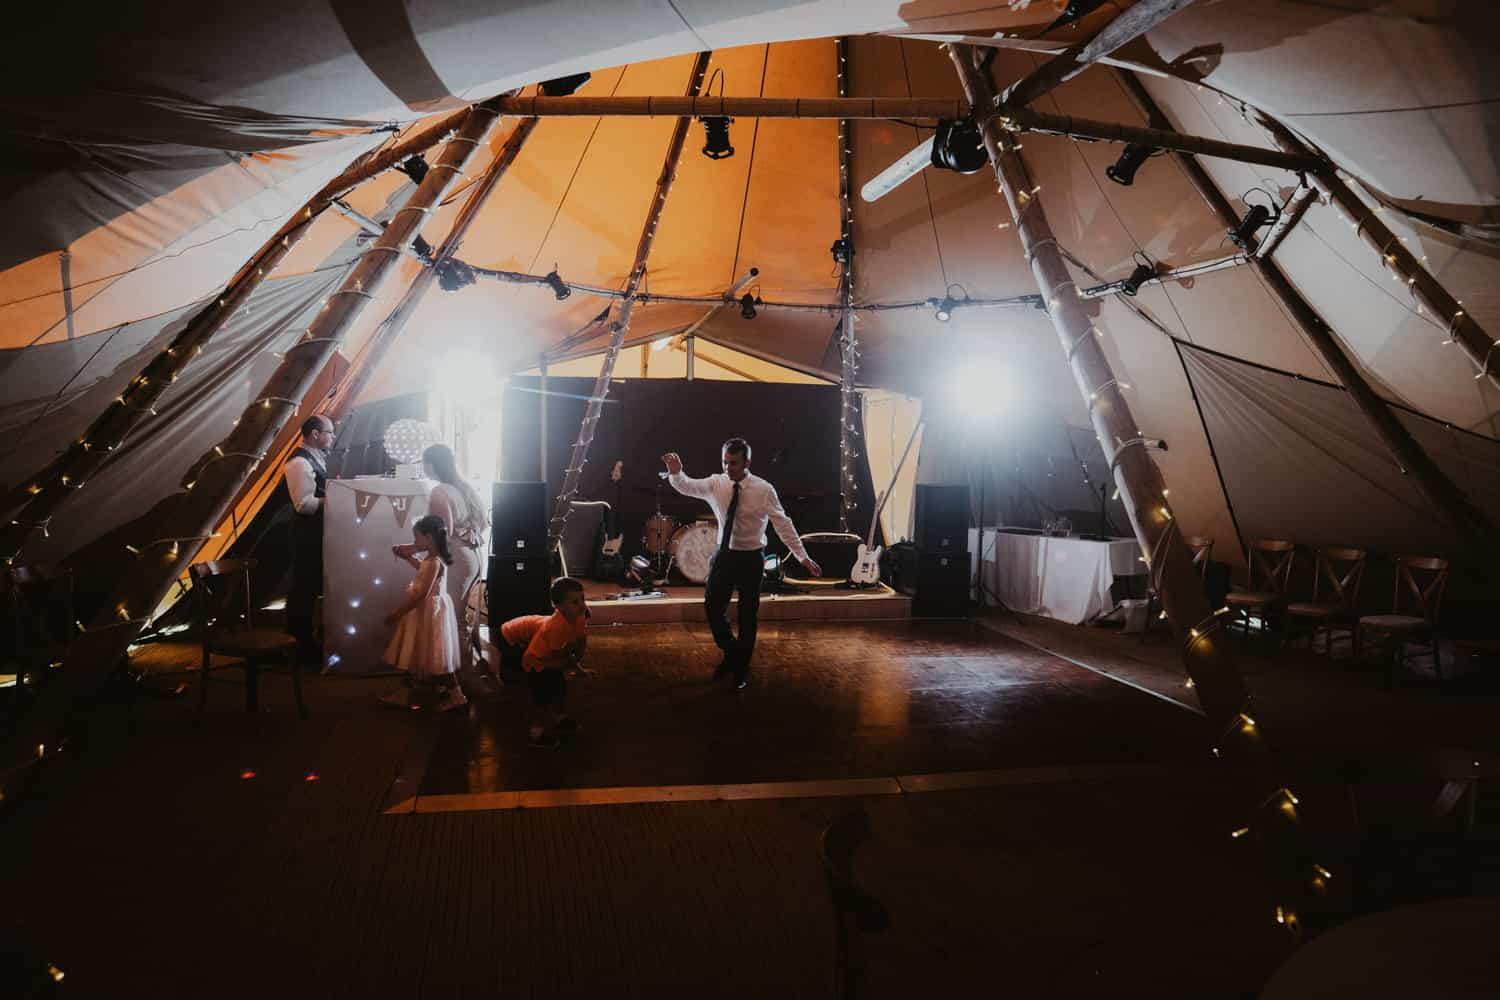 Rustic tipi wedding photography Lancashire | Ian MacMichael photography